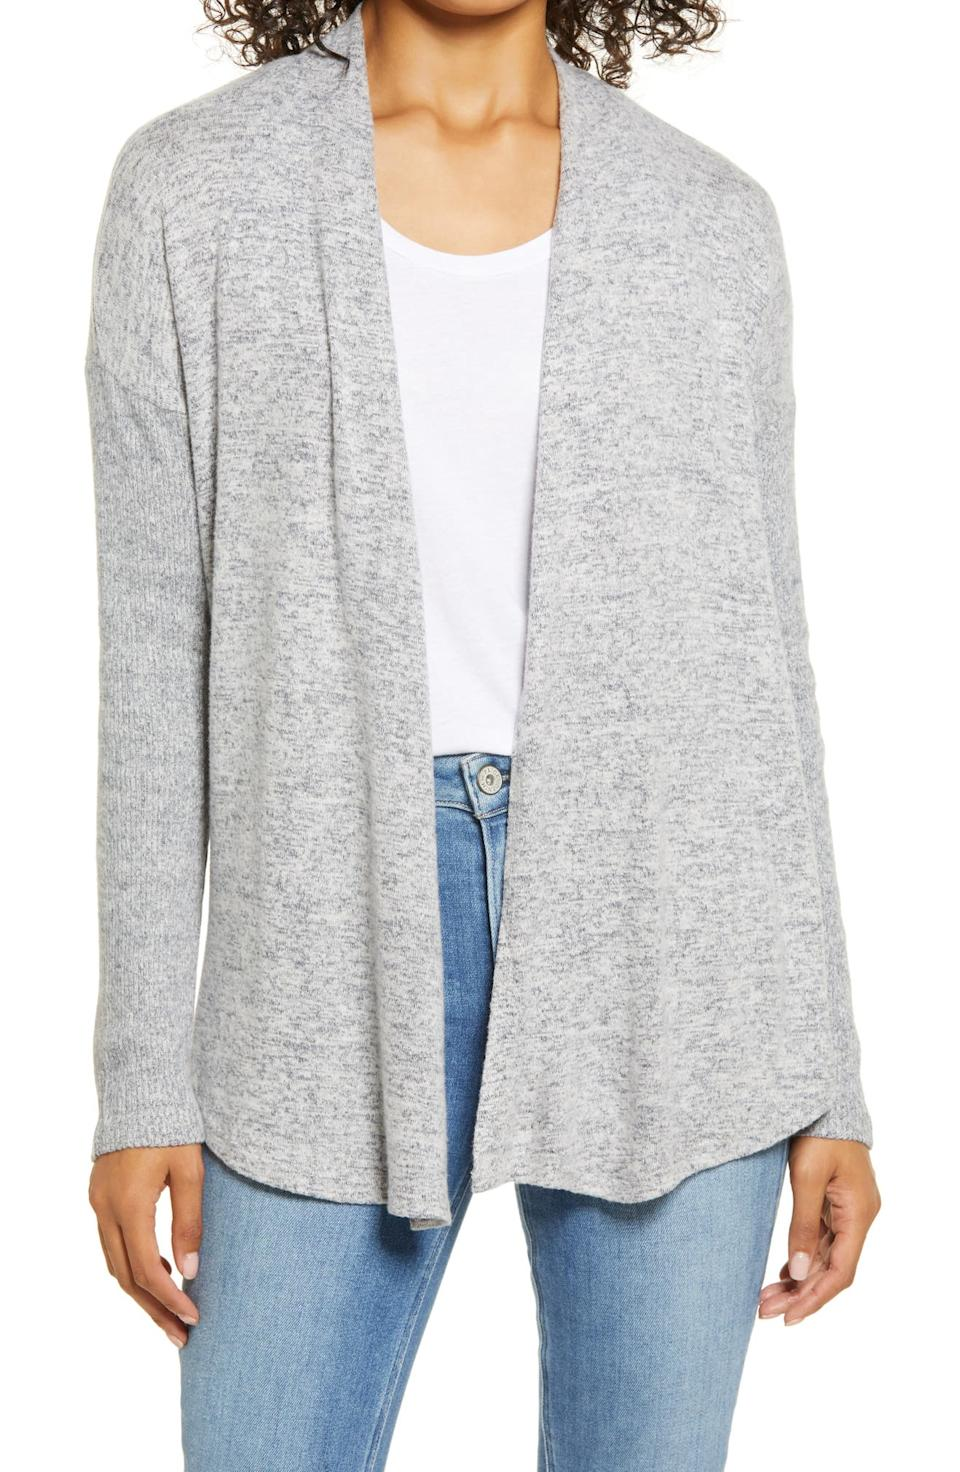 Bobeau Brushed Cardigan. Image via Nordstrom.